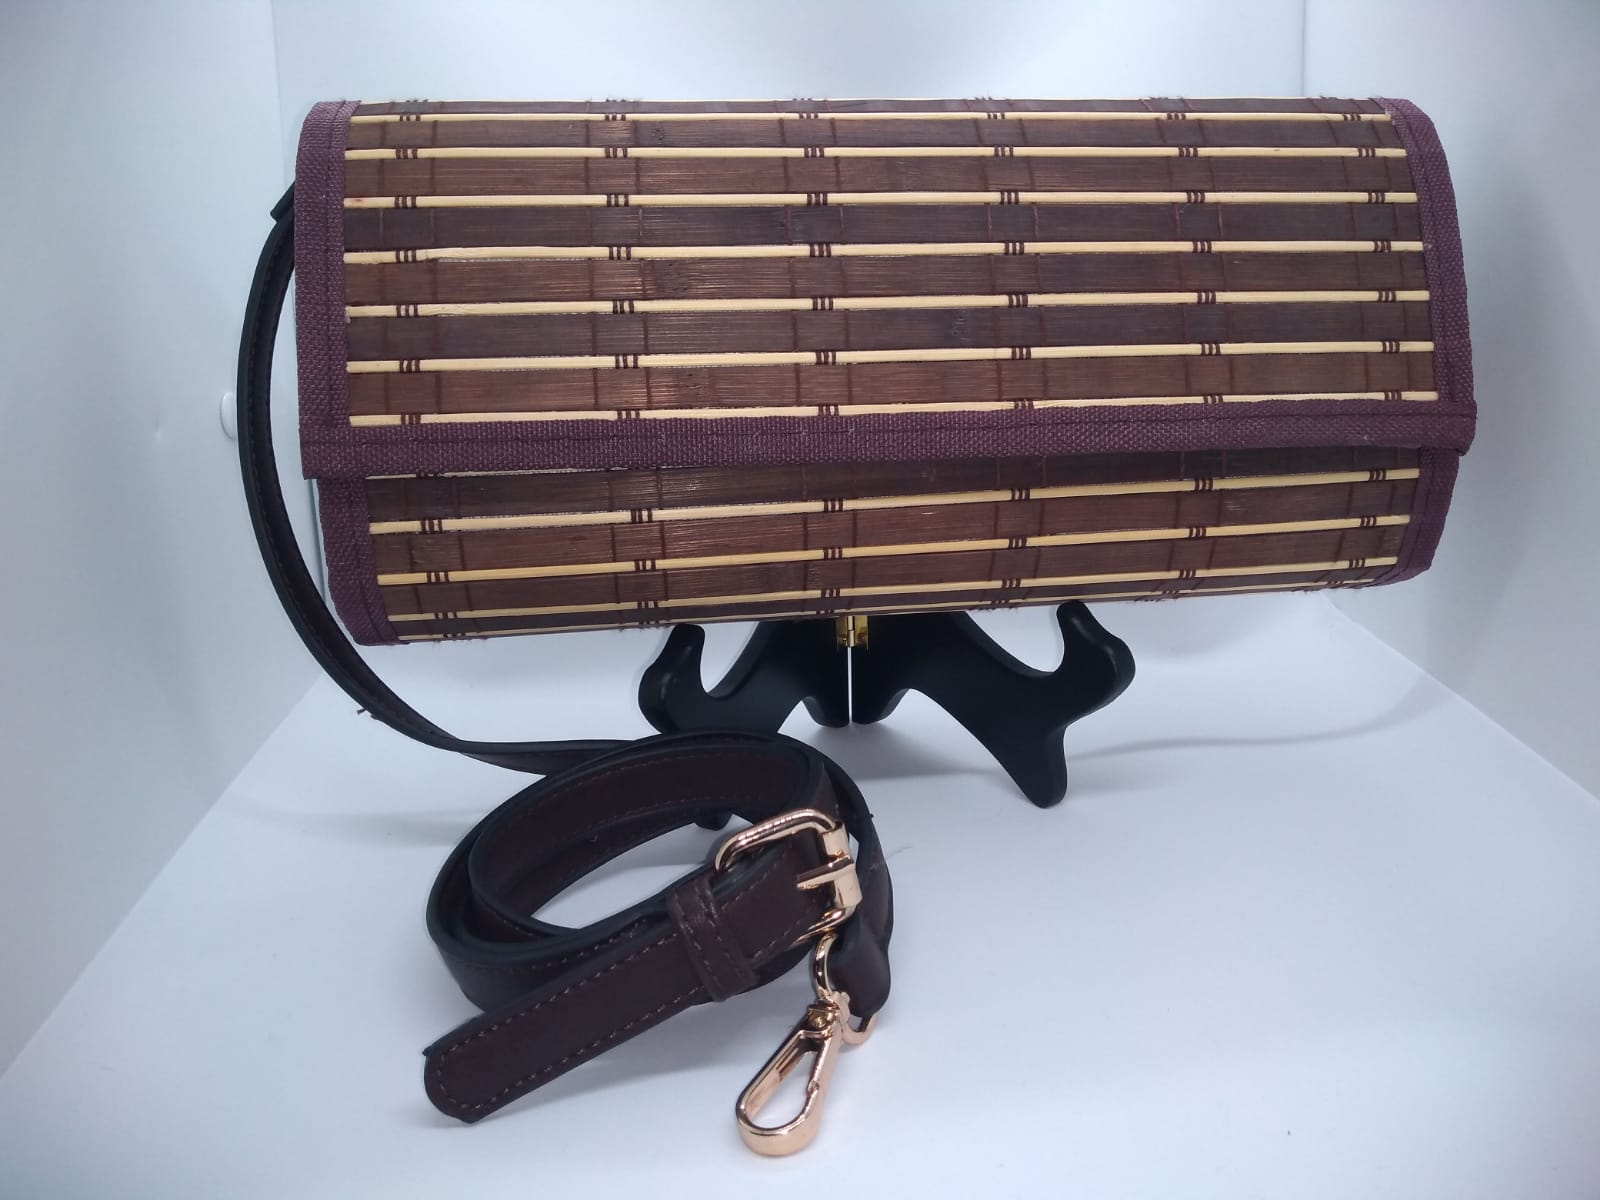 brown and purple clutch front view with deep brown shoulder strap with gold hardware.